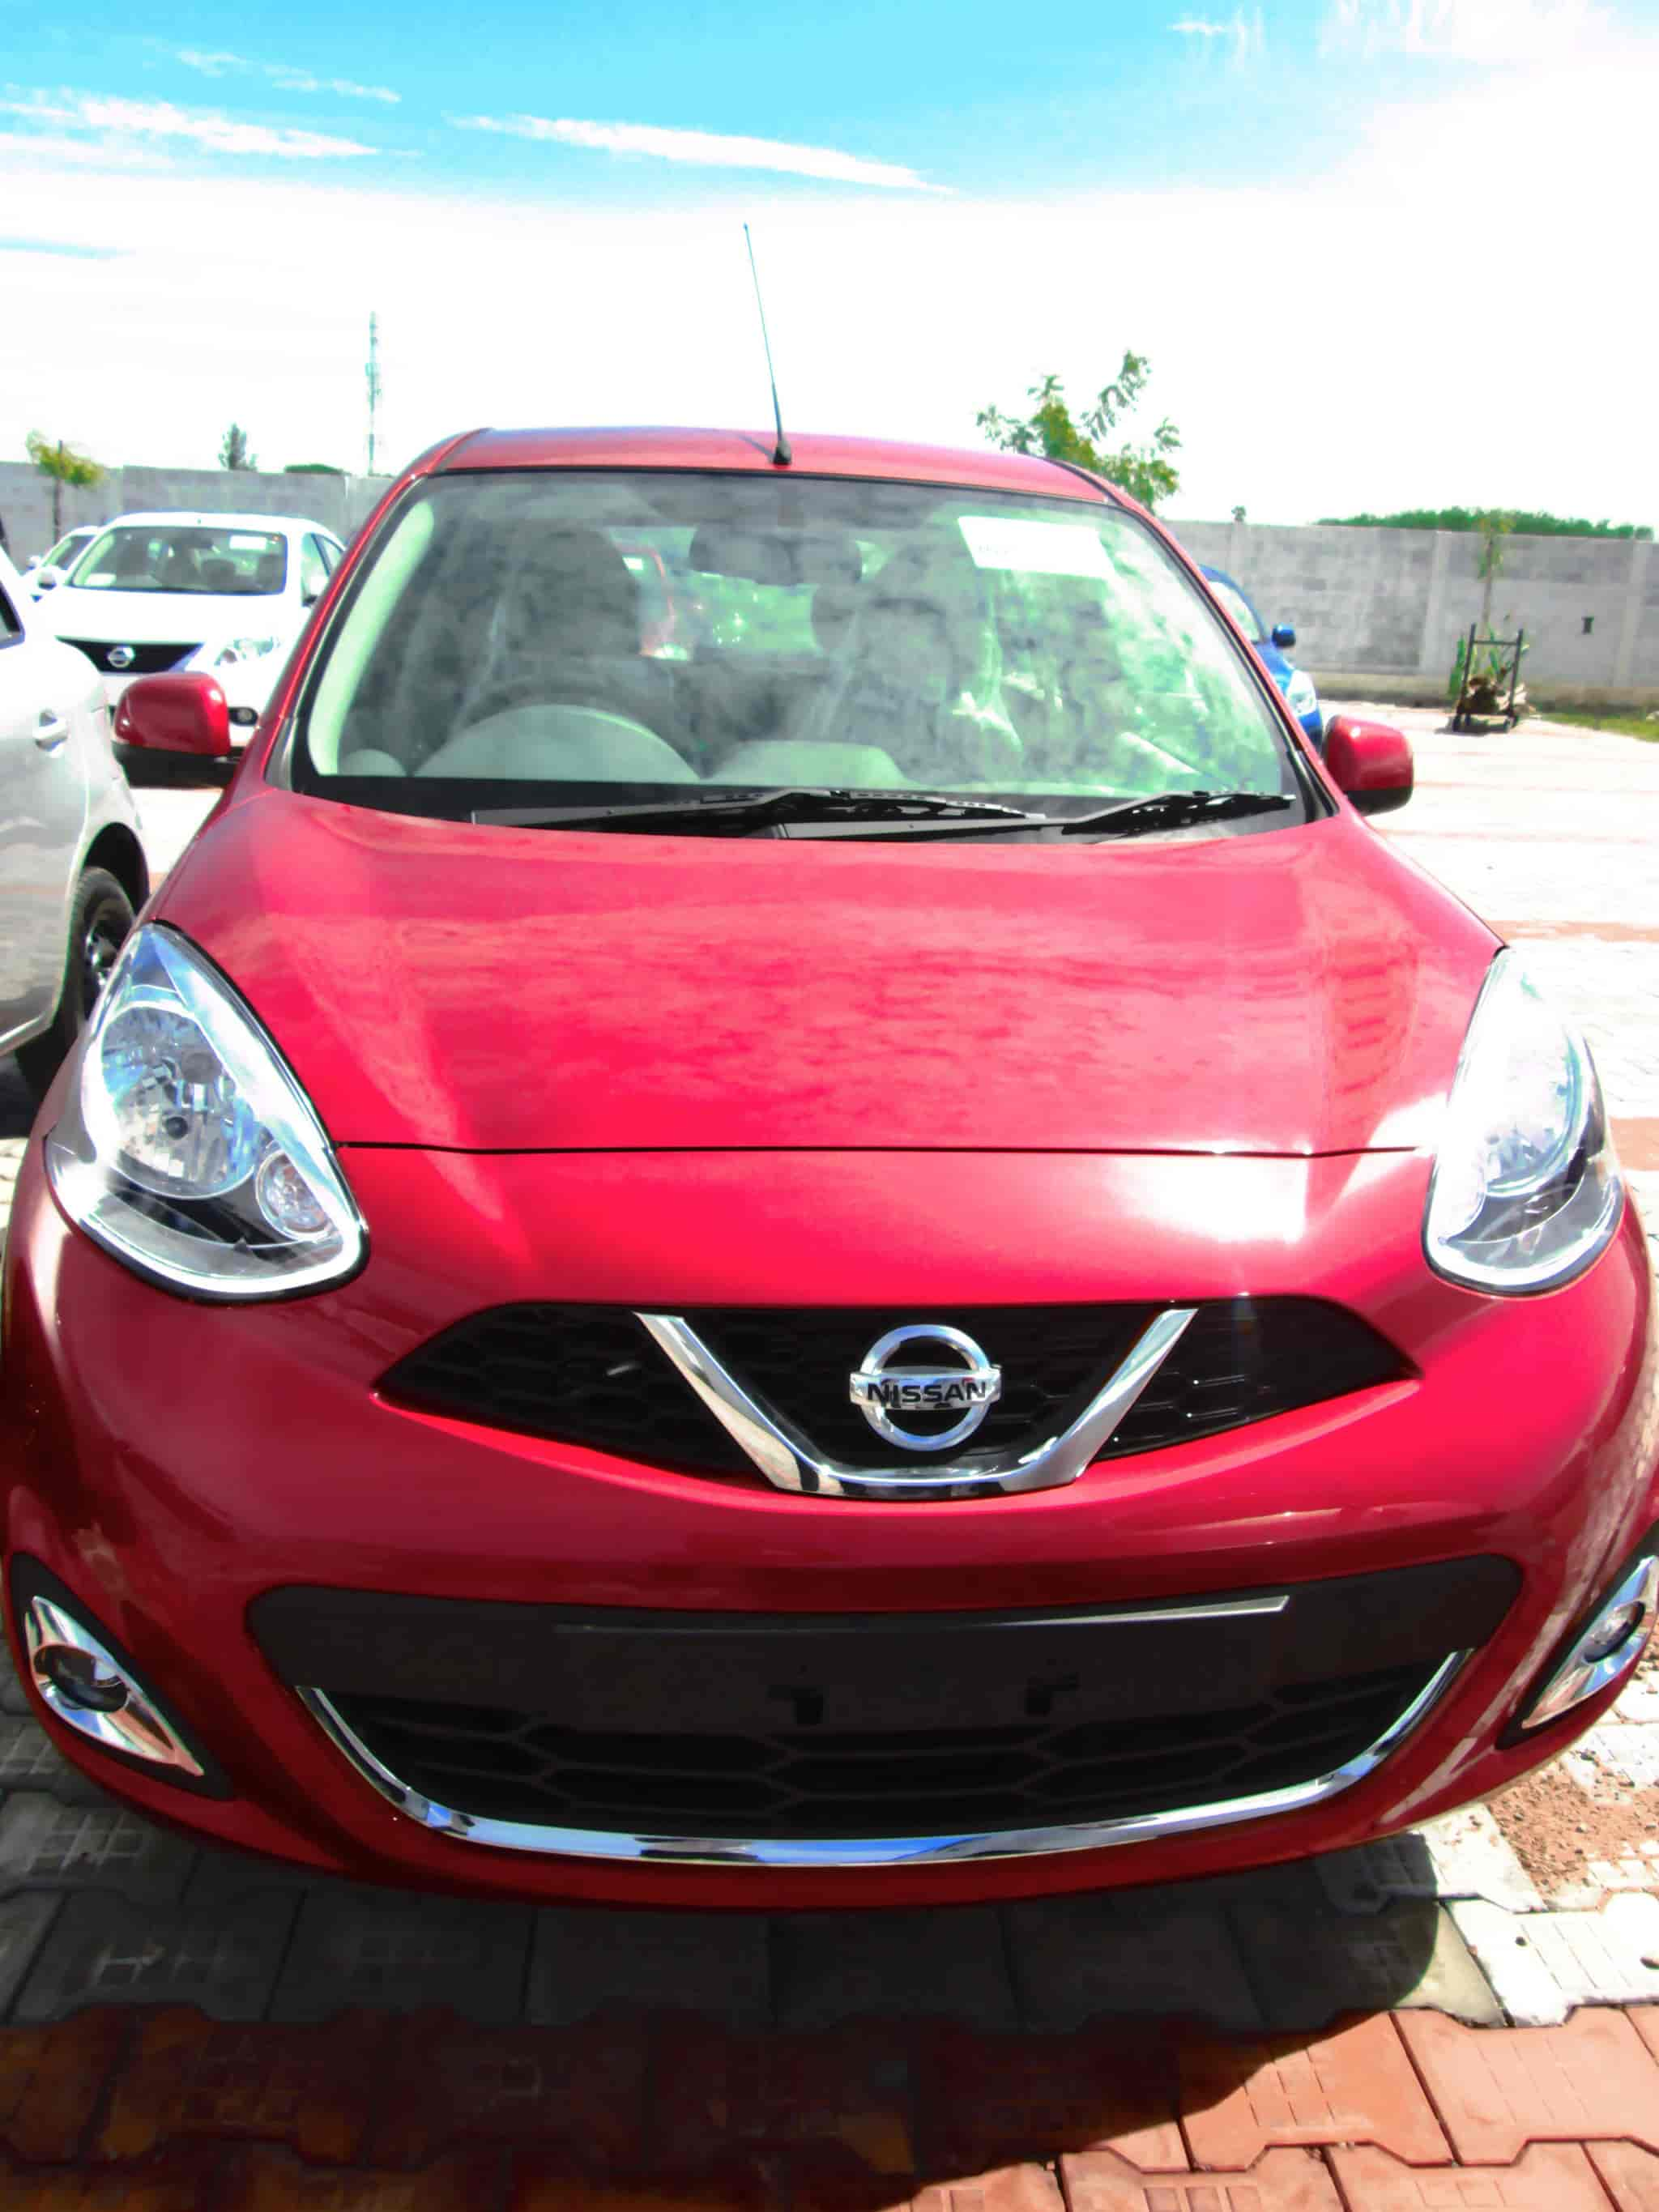 dealerships nissan dealership serving texas autocenters collinsville bates about central il dealers in your md